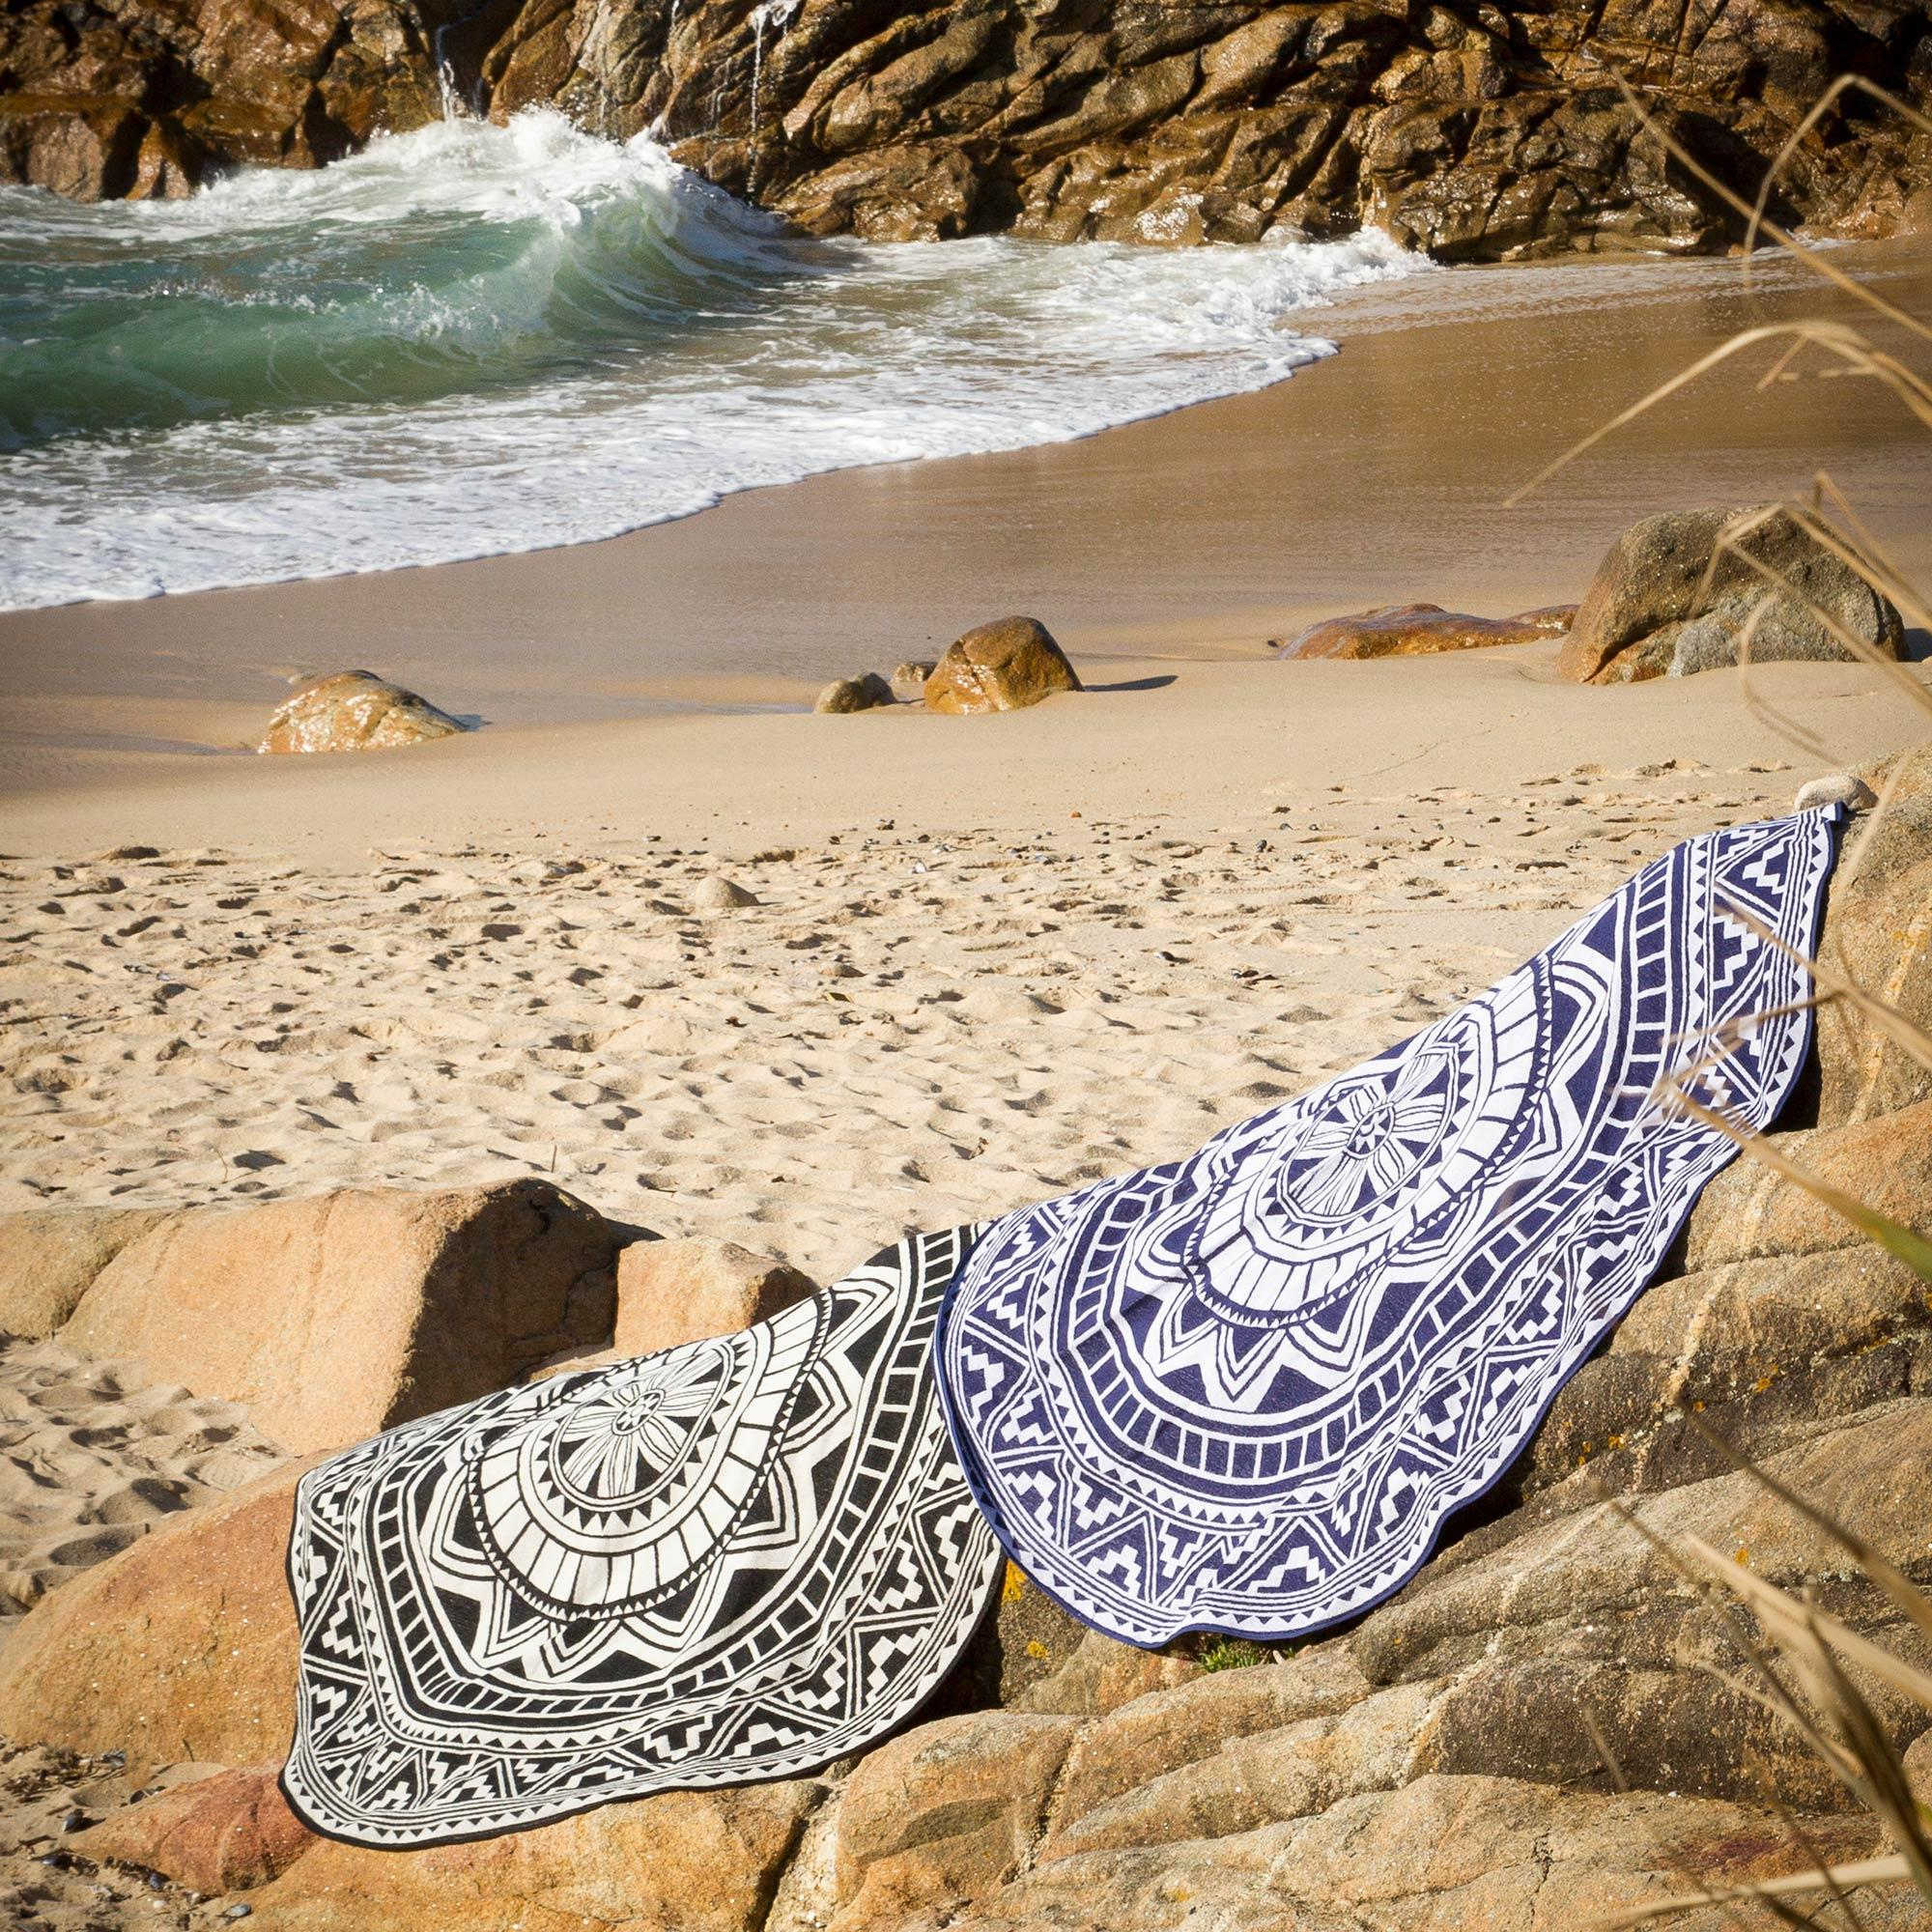 drap de plage fouta ronde r180 100 coton 290 g m pelosa mosaic arabesque noir ebay. Black Bedroom Furniture Sets. Home Design Ideas